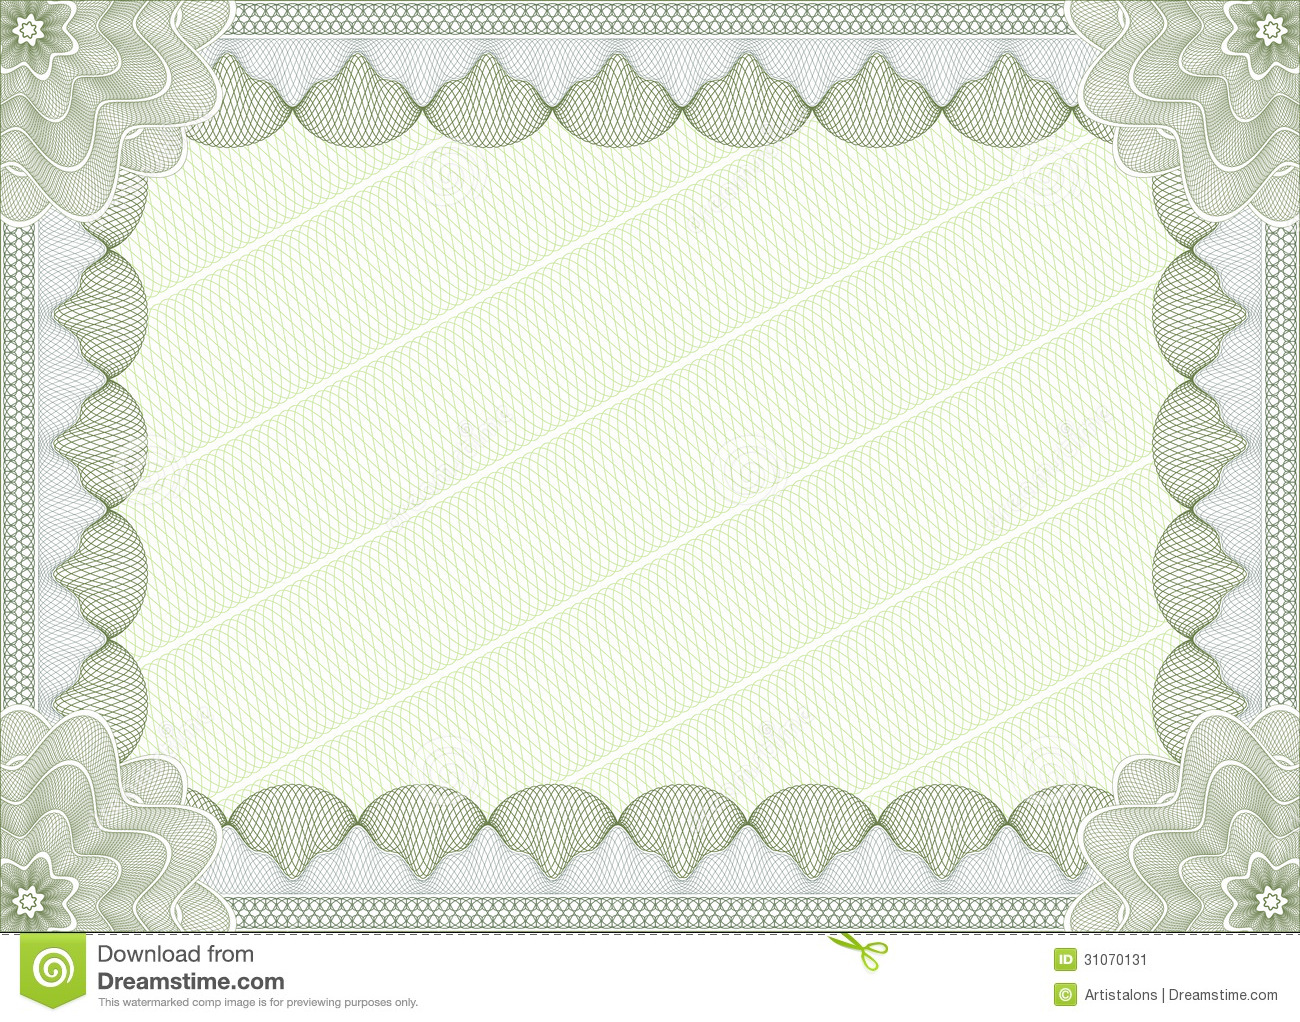 Green Certificate Or Diploma Template Stock Image - Image: 31070131